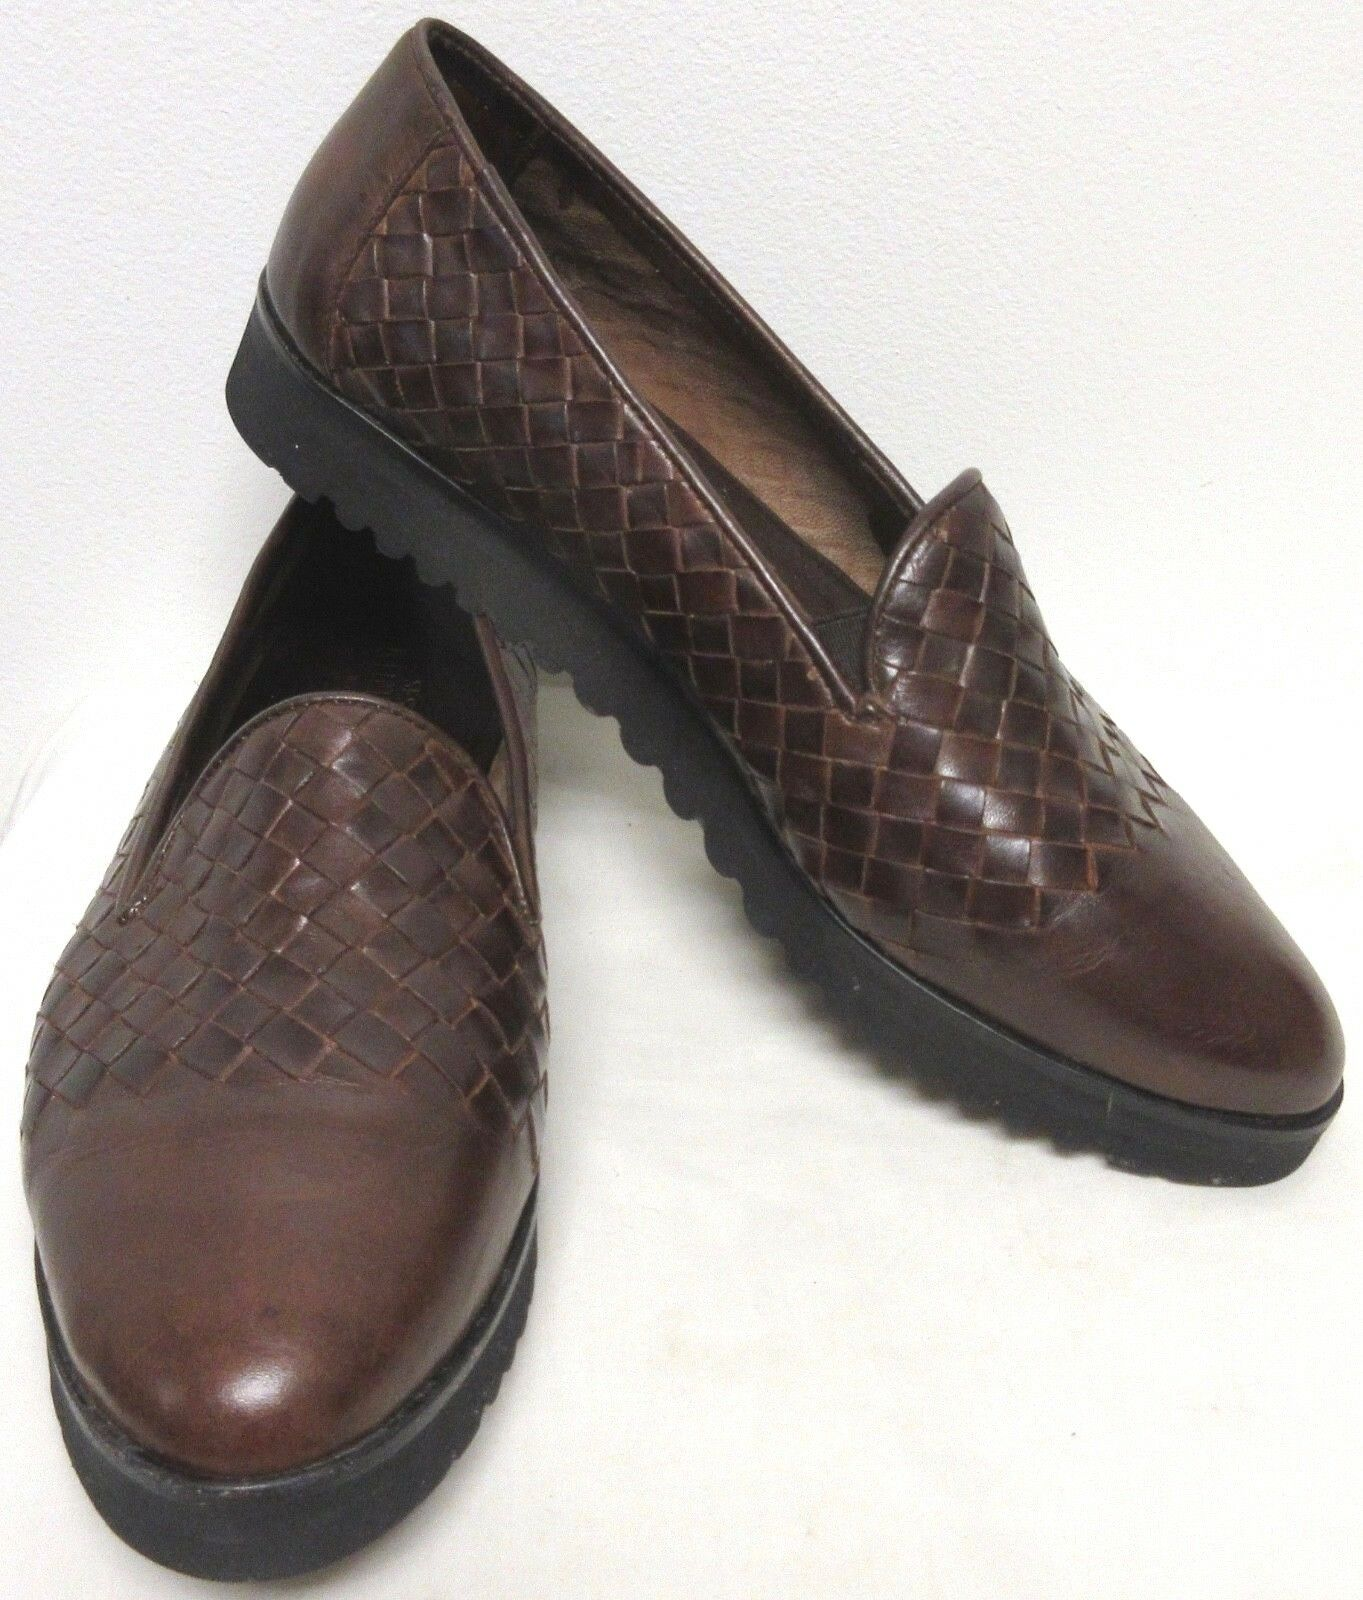 SESTO MEUCCI BROW WOVEN LEATHER COMFORT SPORT SLIP-ON Schuhe LOAFERS RUBBER SOLE